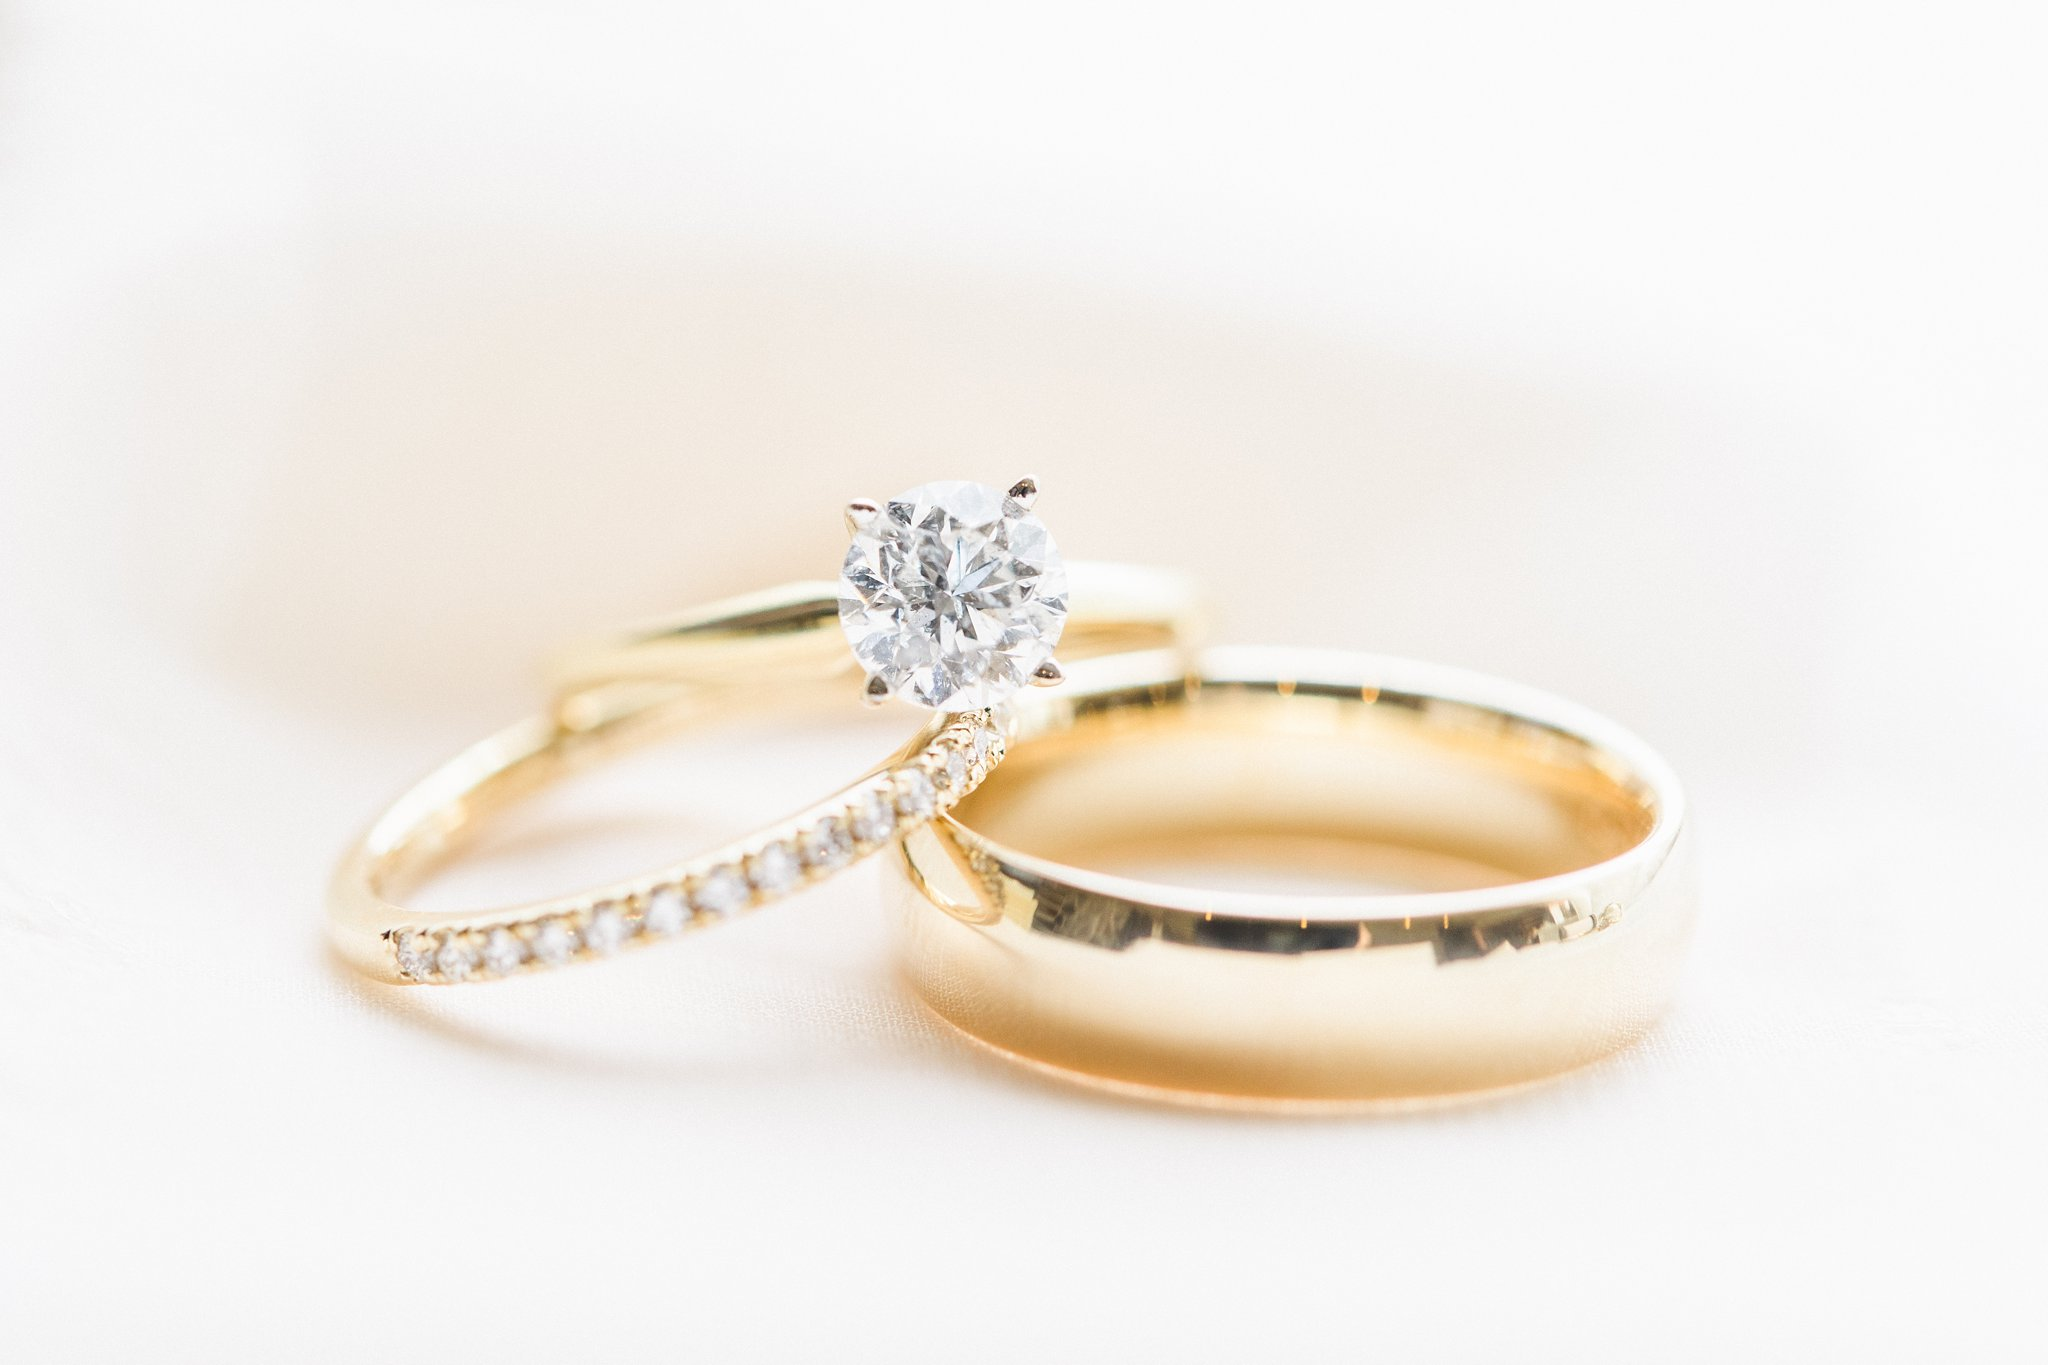 Yellow gold solitaire diamond ring with matching groom and bride wedding band married at Stonefields, Amy Pinder Photography